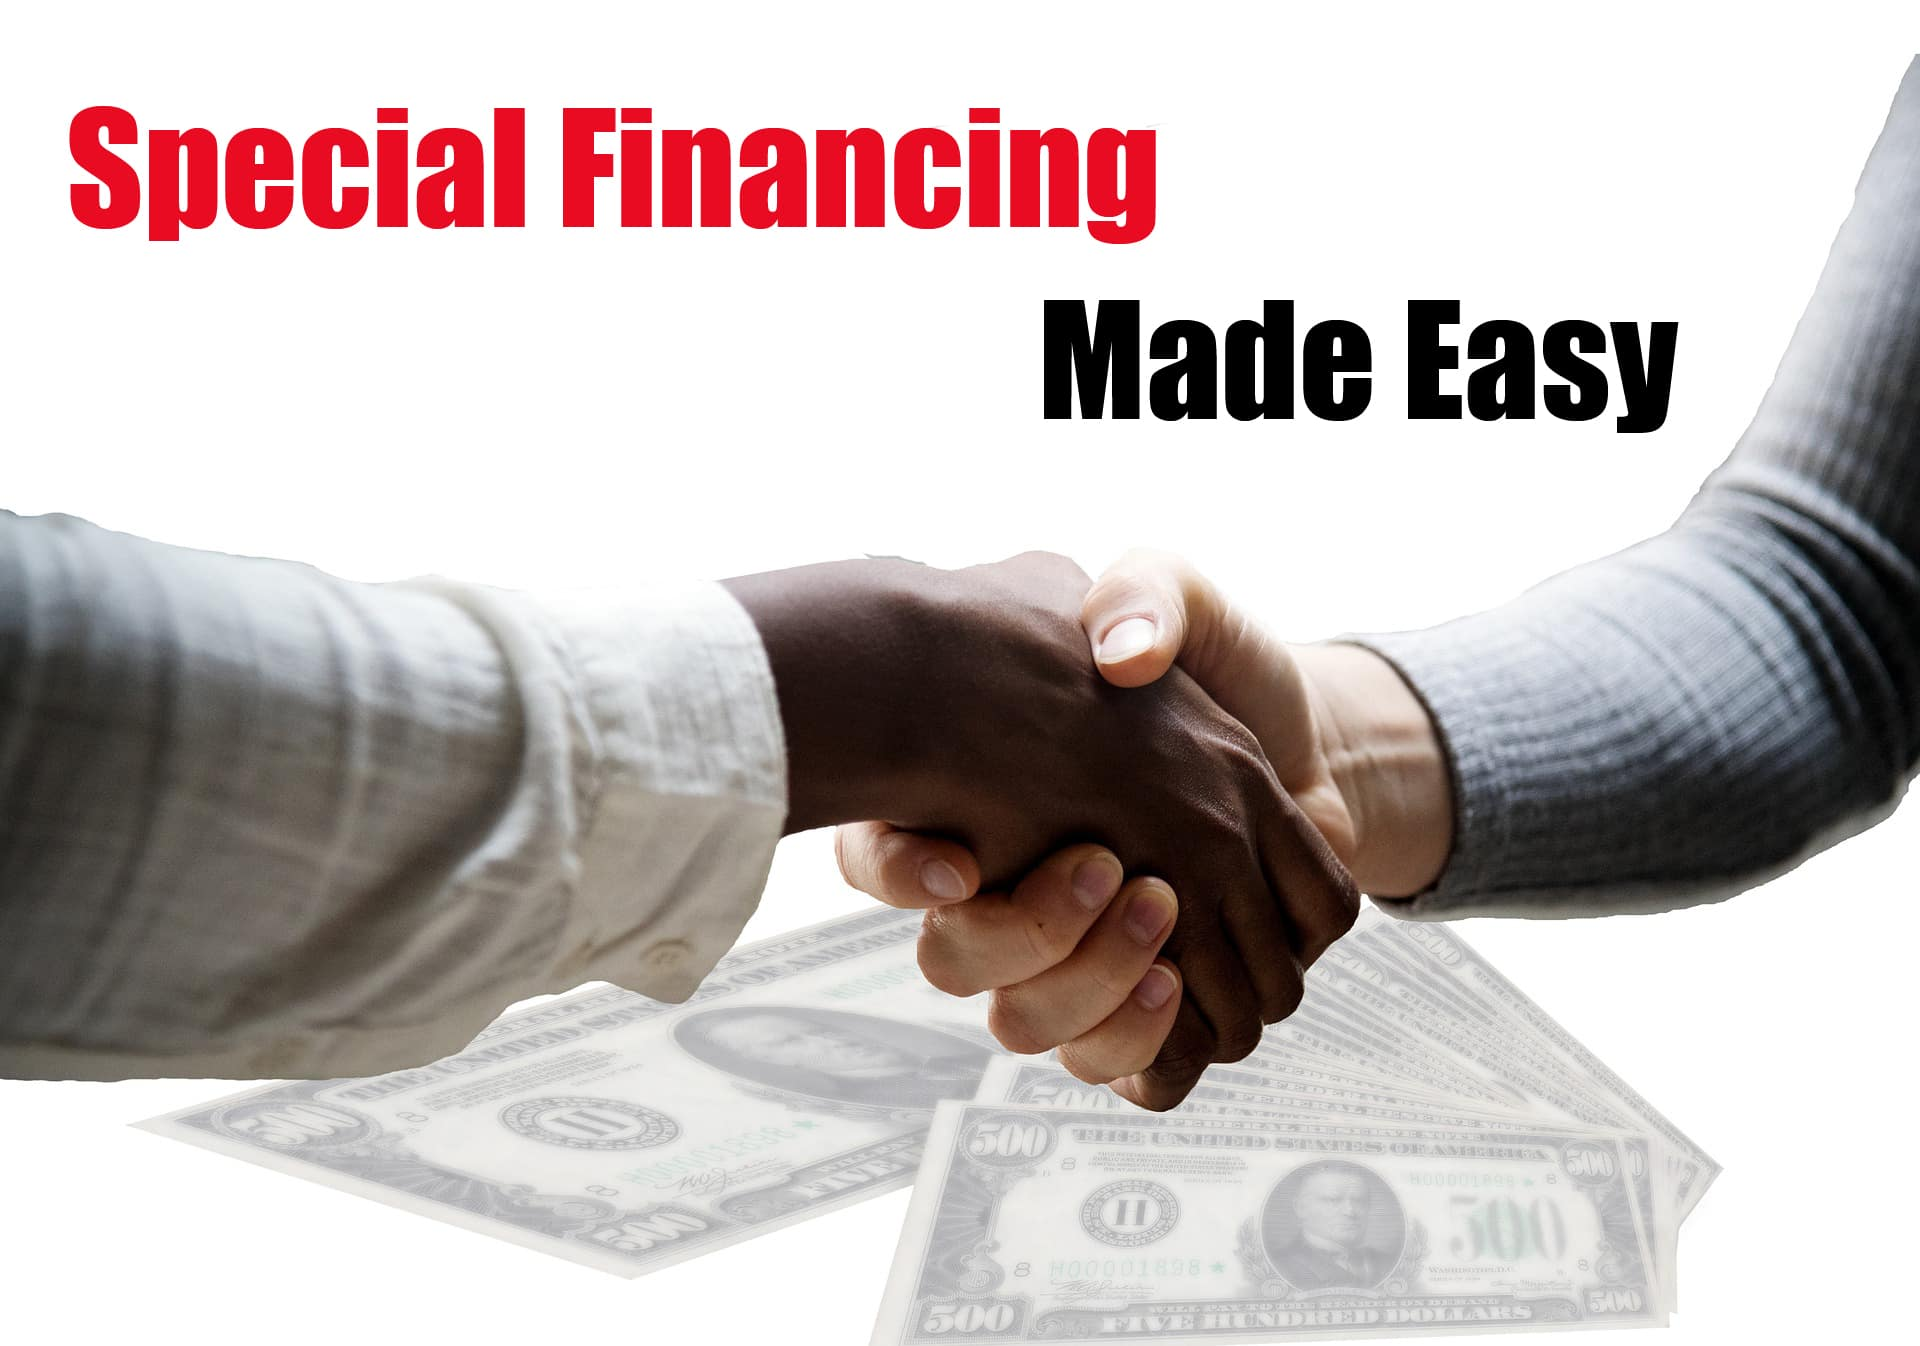 Special Financing Made Easy